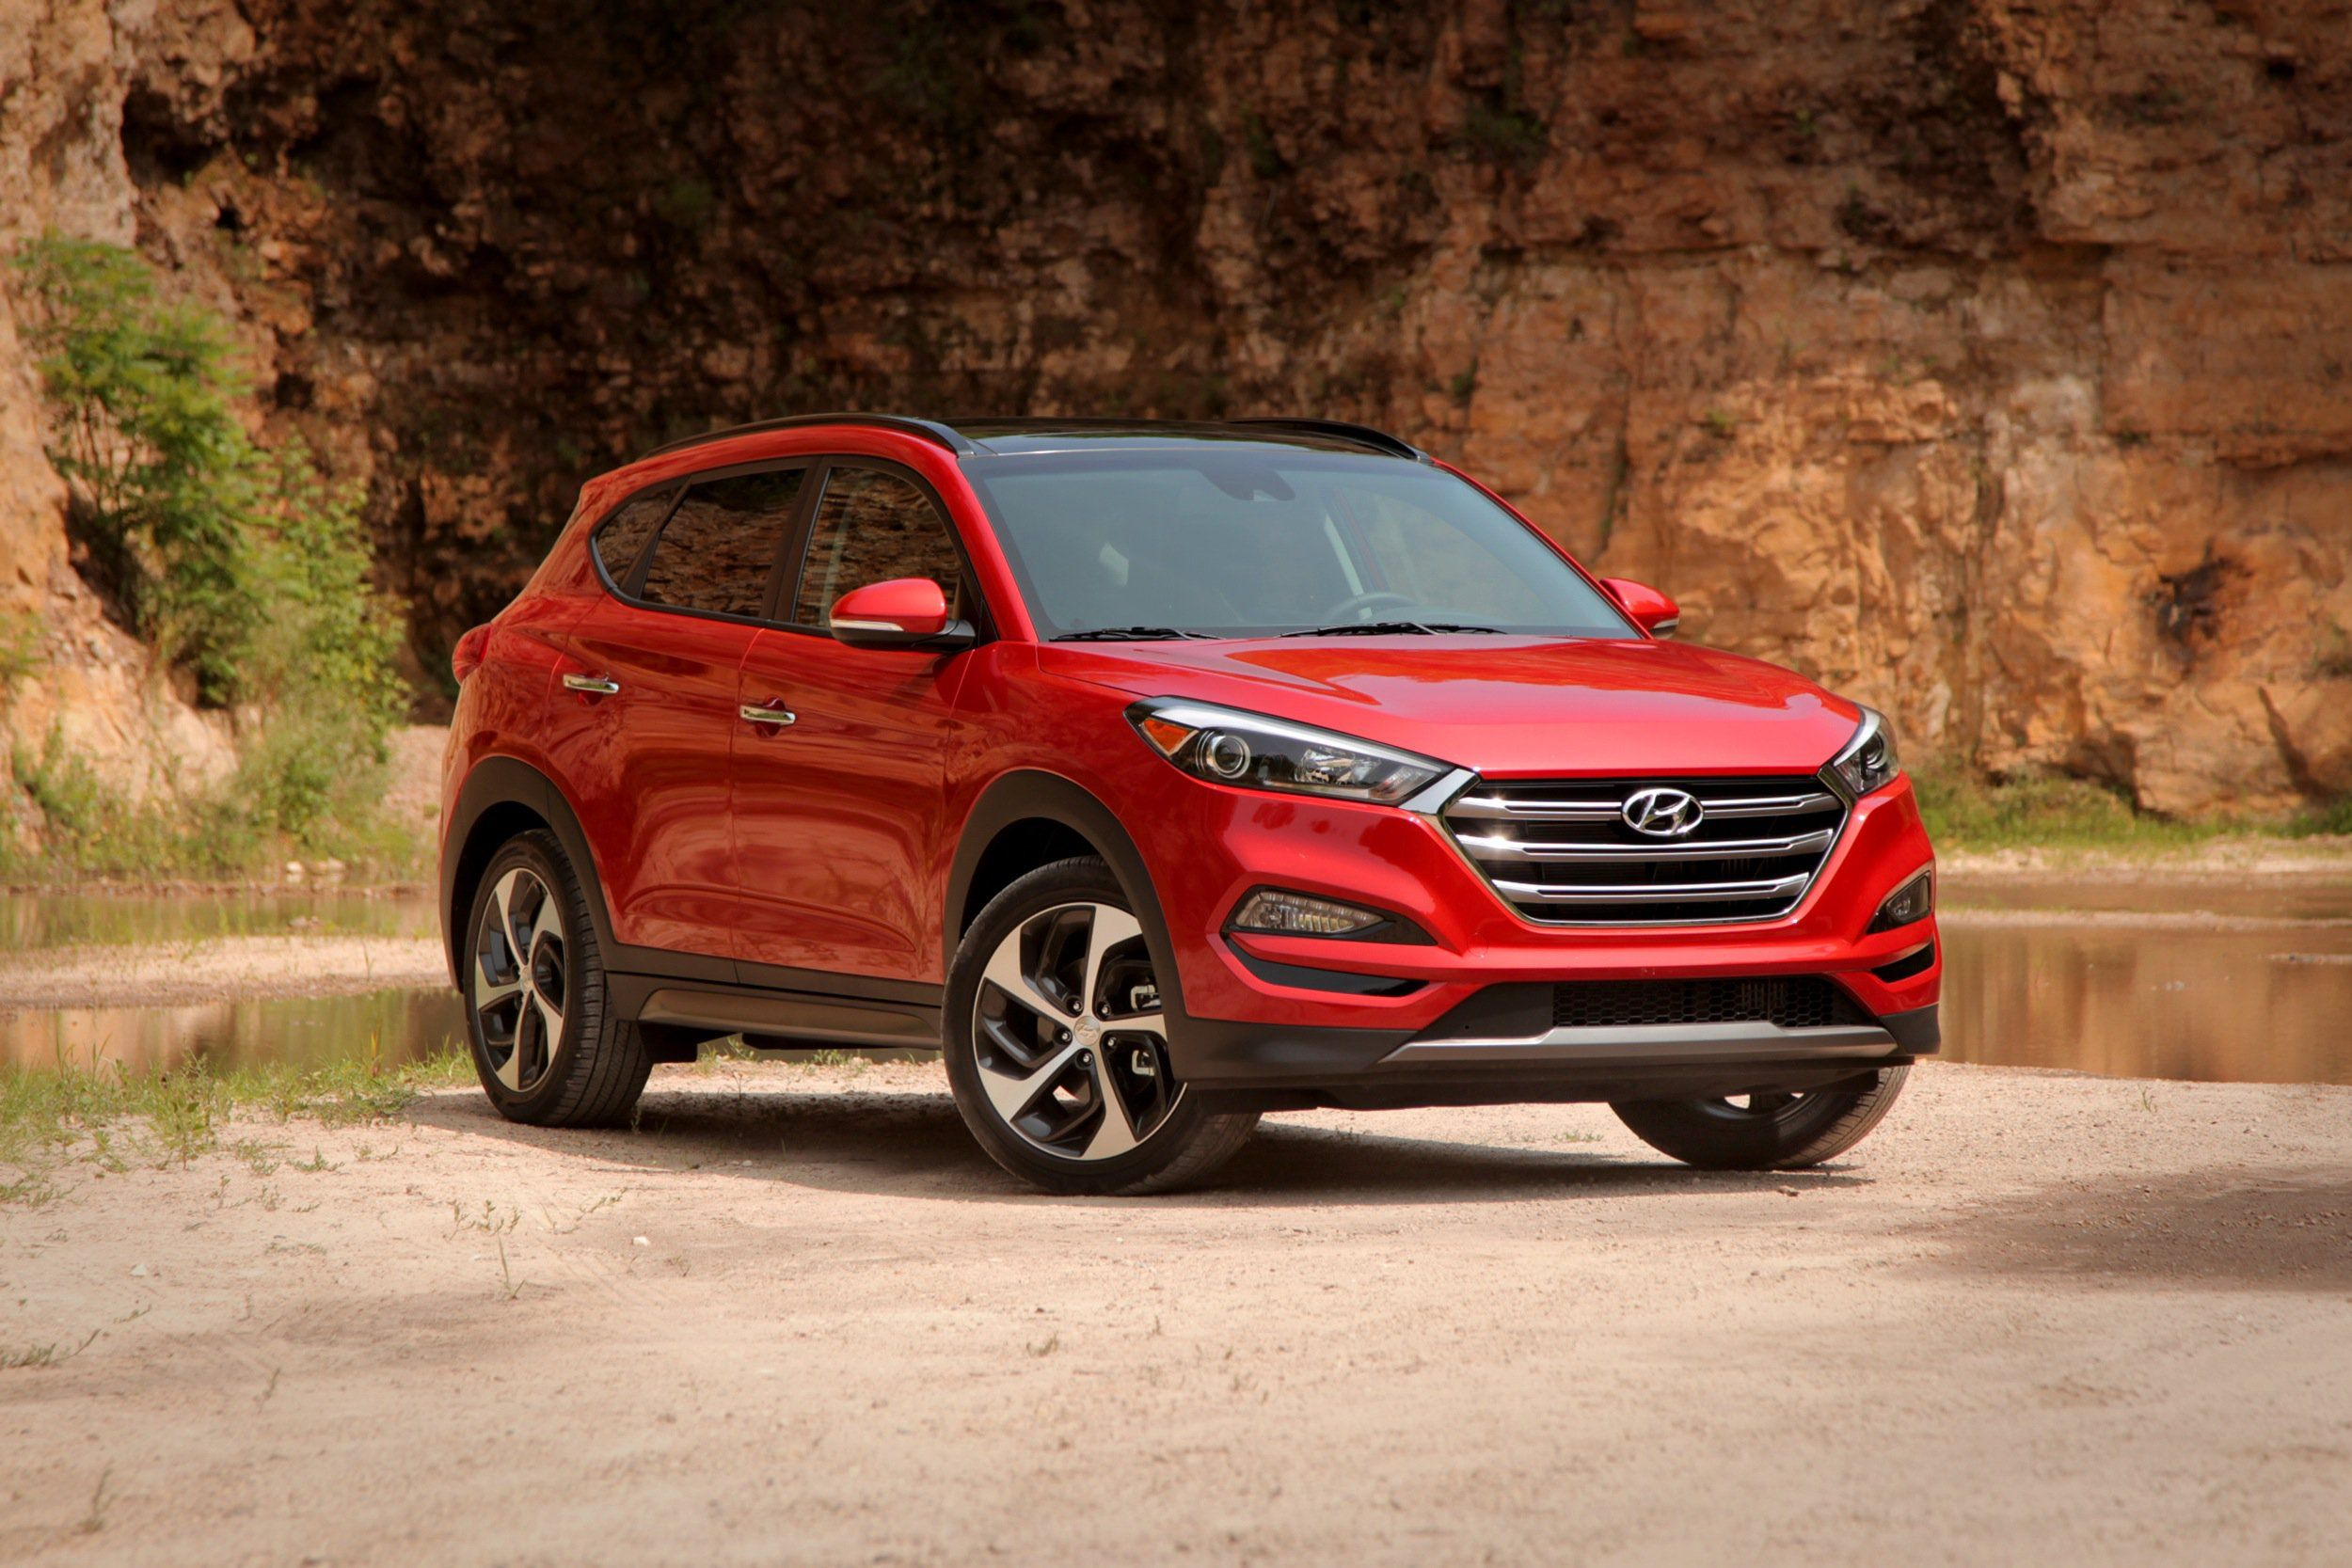 The 2016 Hyundai Tucson is the type of SUV car People always need